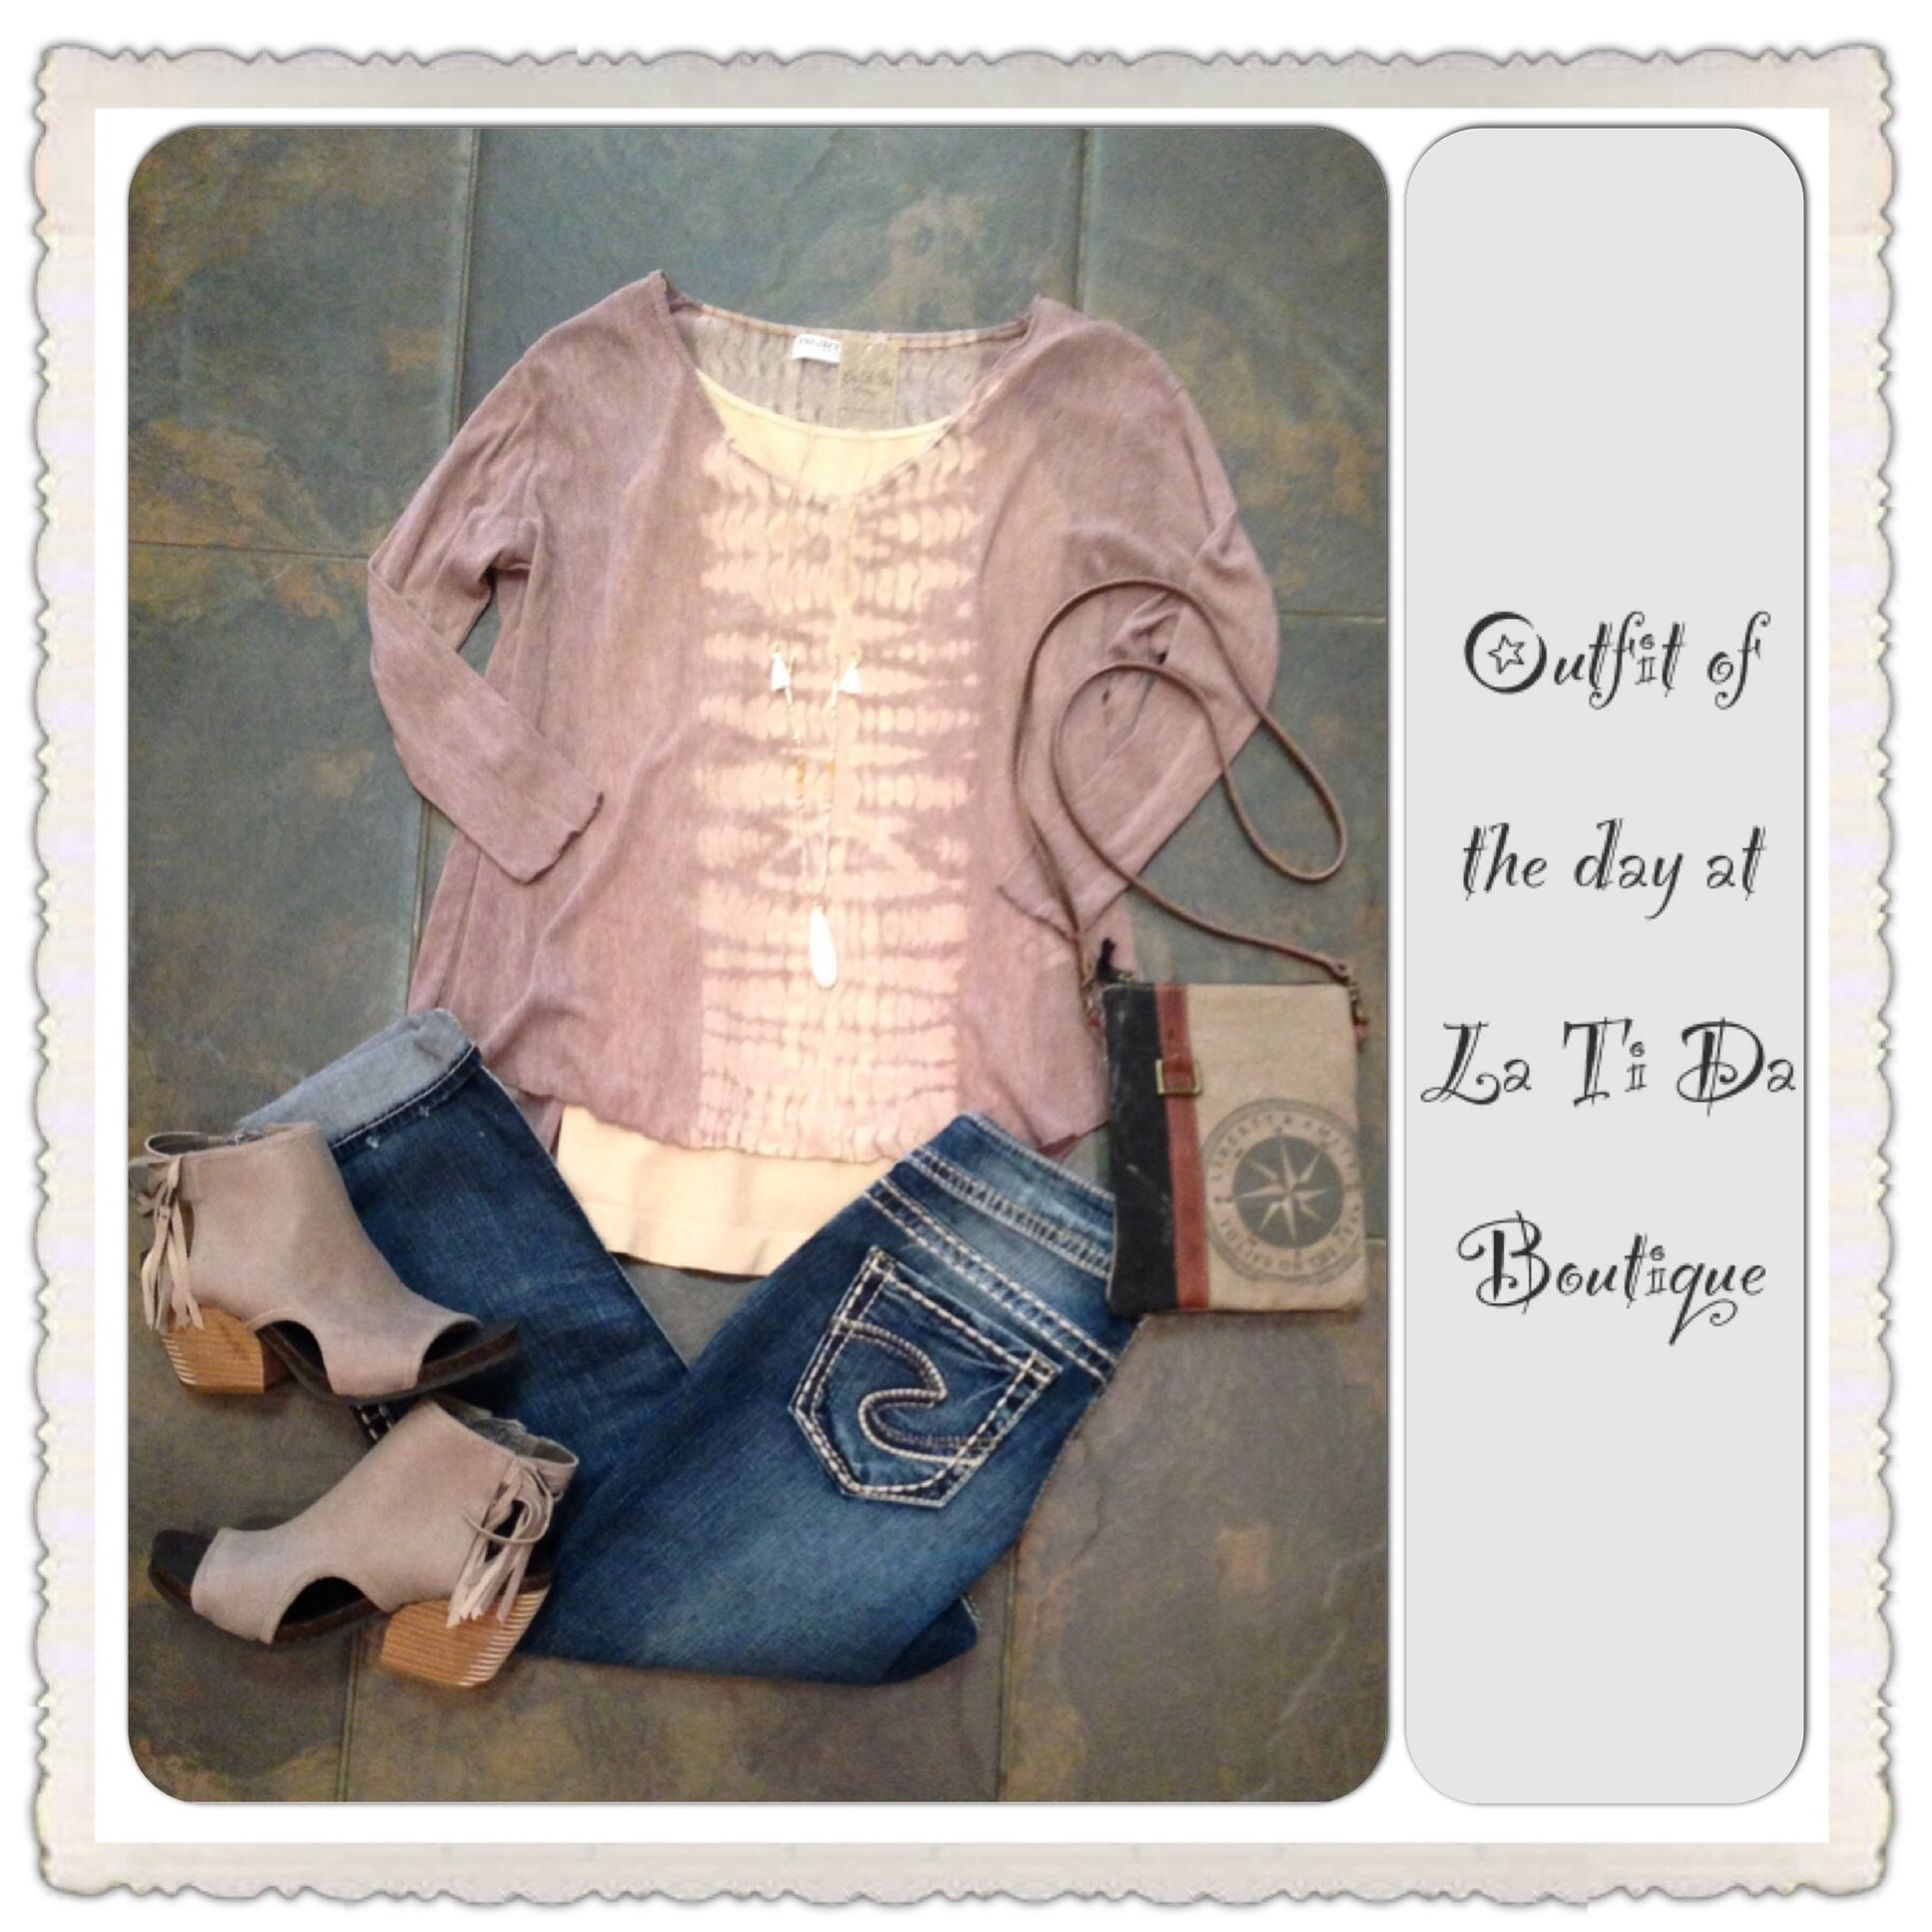 #ootd #outfitoftheday #projectsocialt top #silverjeans #otbt #offthebeatentrack peep toes #monab handbag #judsonandco necklace find it all at #latidaboutique where #springishere ☀️